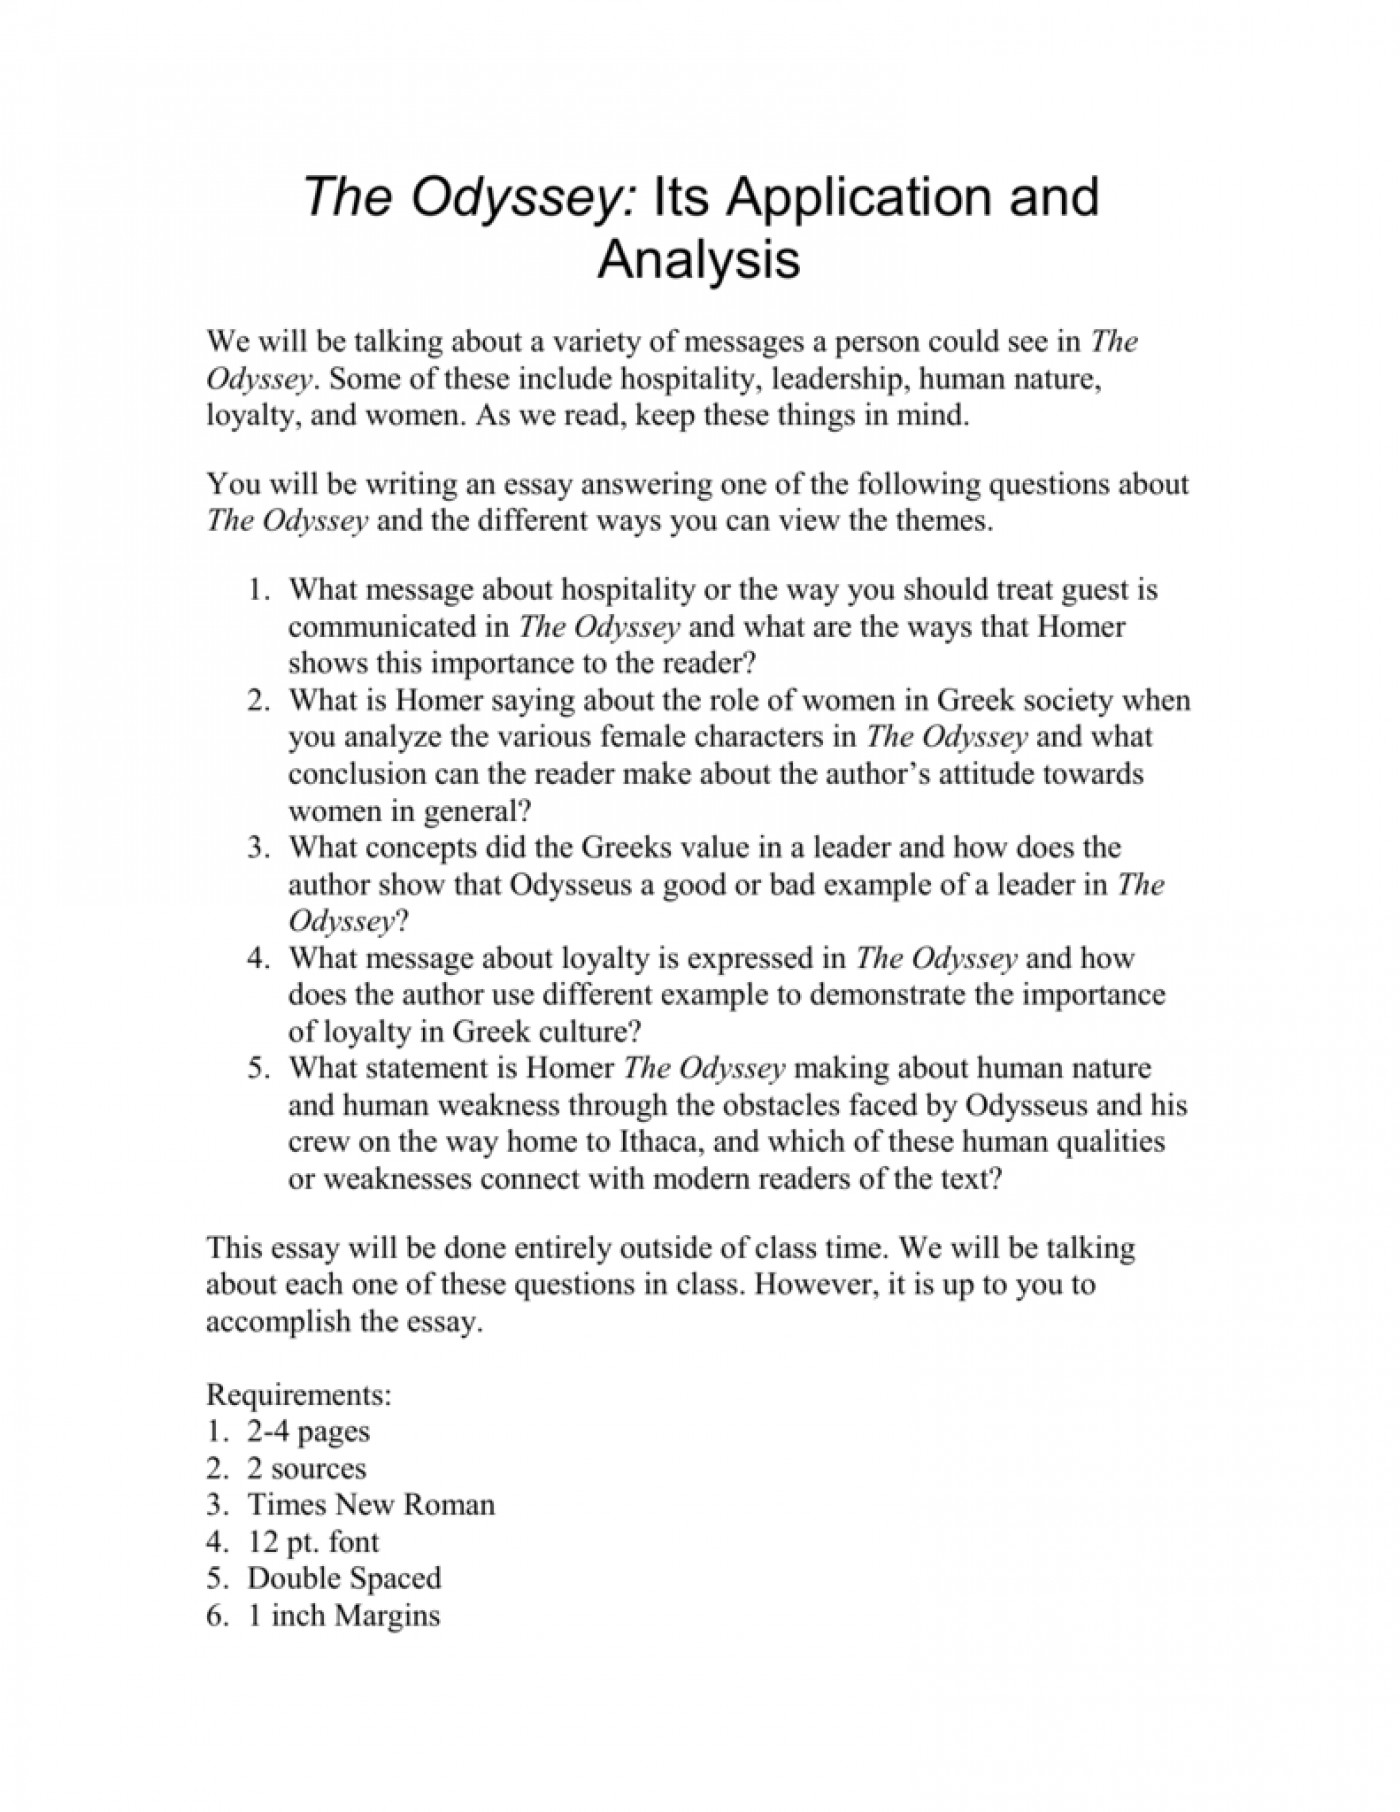 009 Essay Example Odyssey Topics 008004991 1 Amazing Prompt Prompts 1400